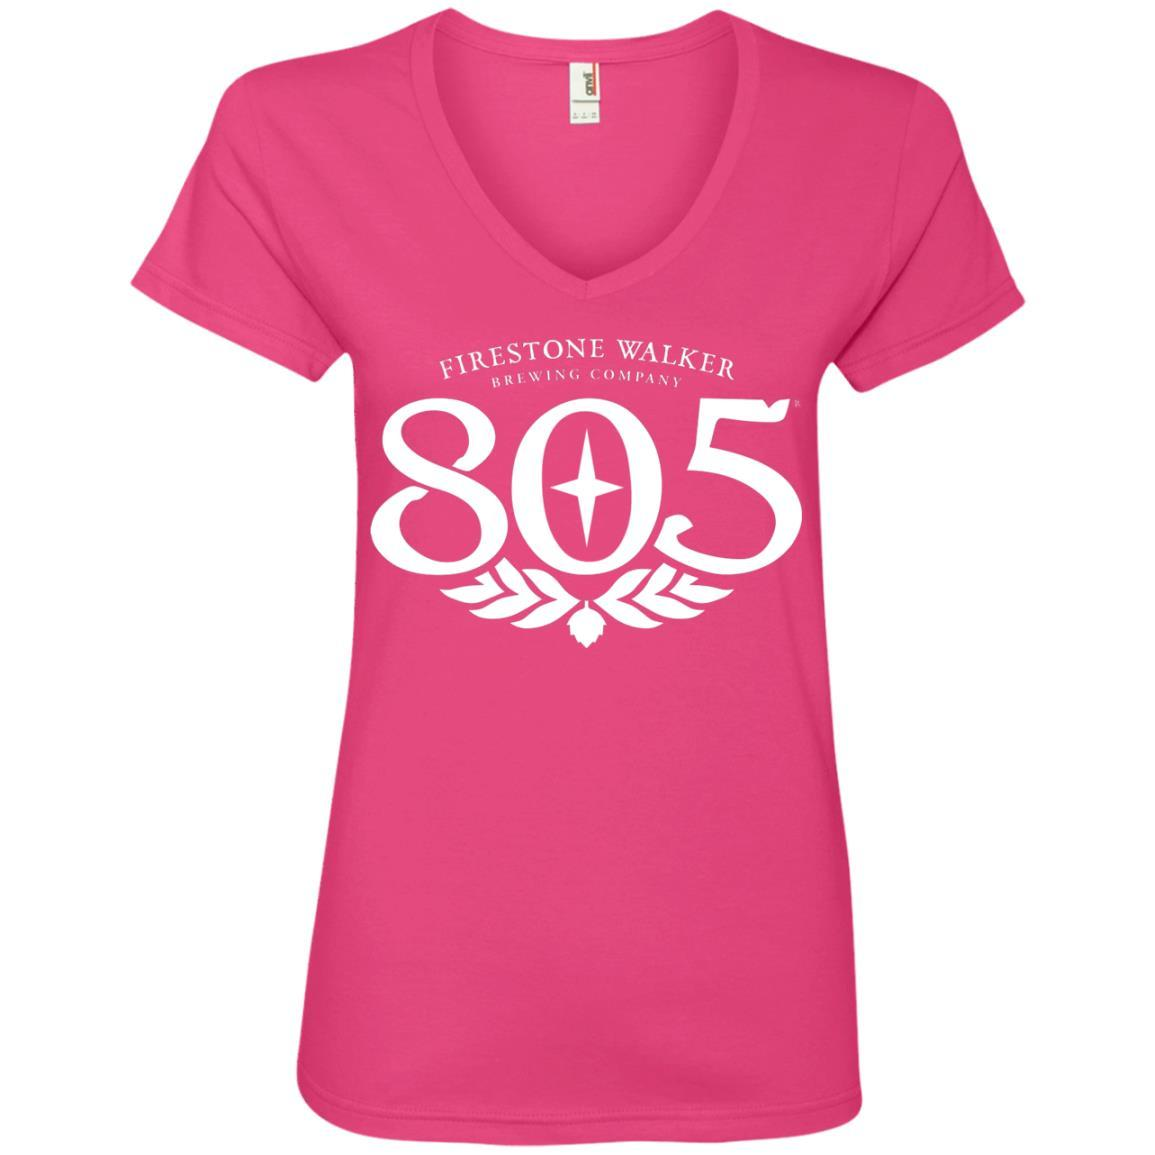 805 Beer - Anvil Ladies' V-Neck T-Shirt Style / Color / Size